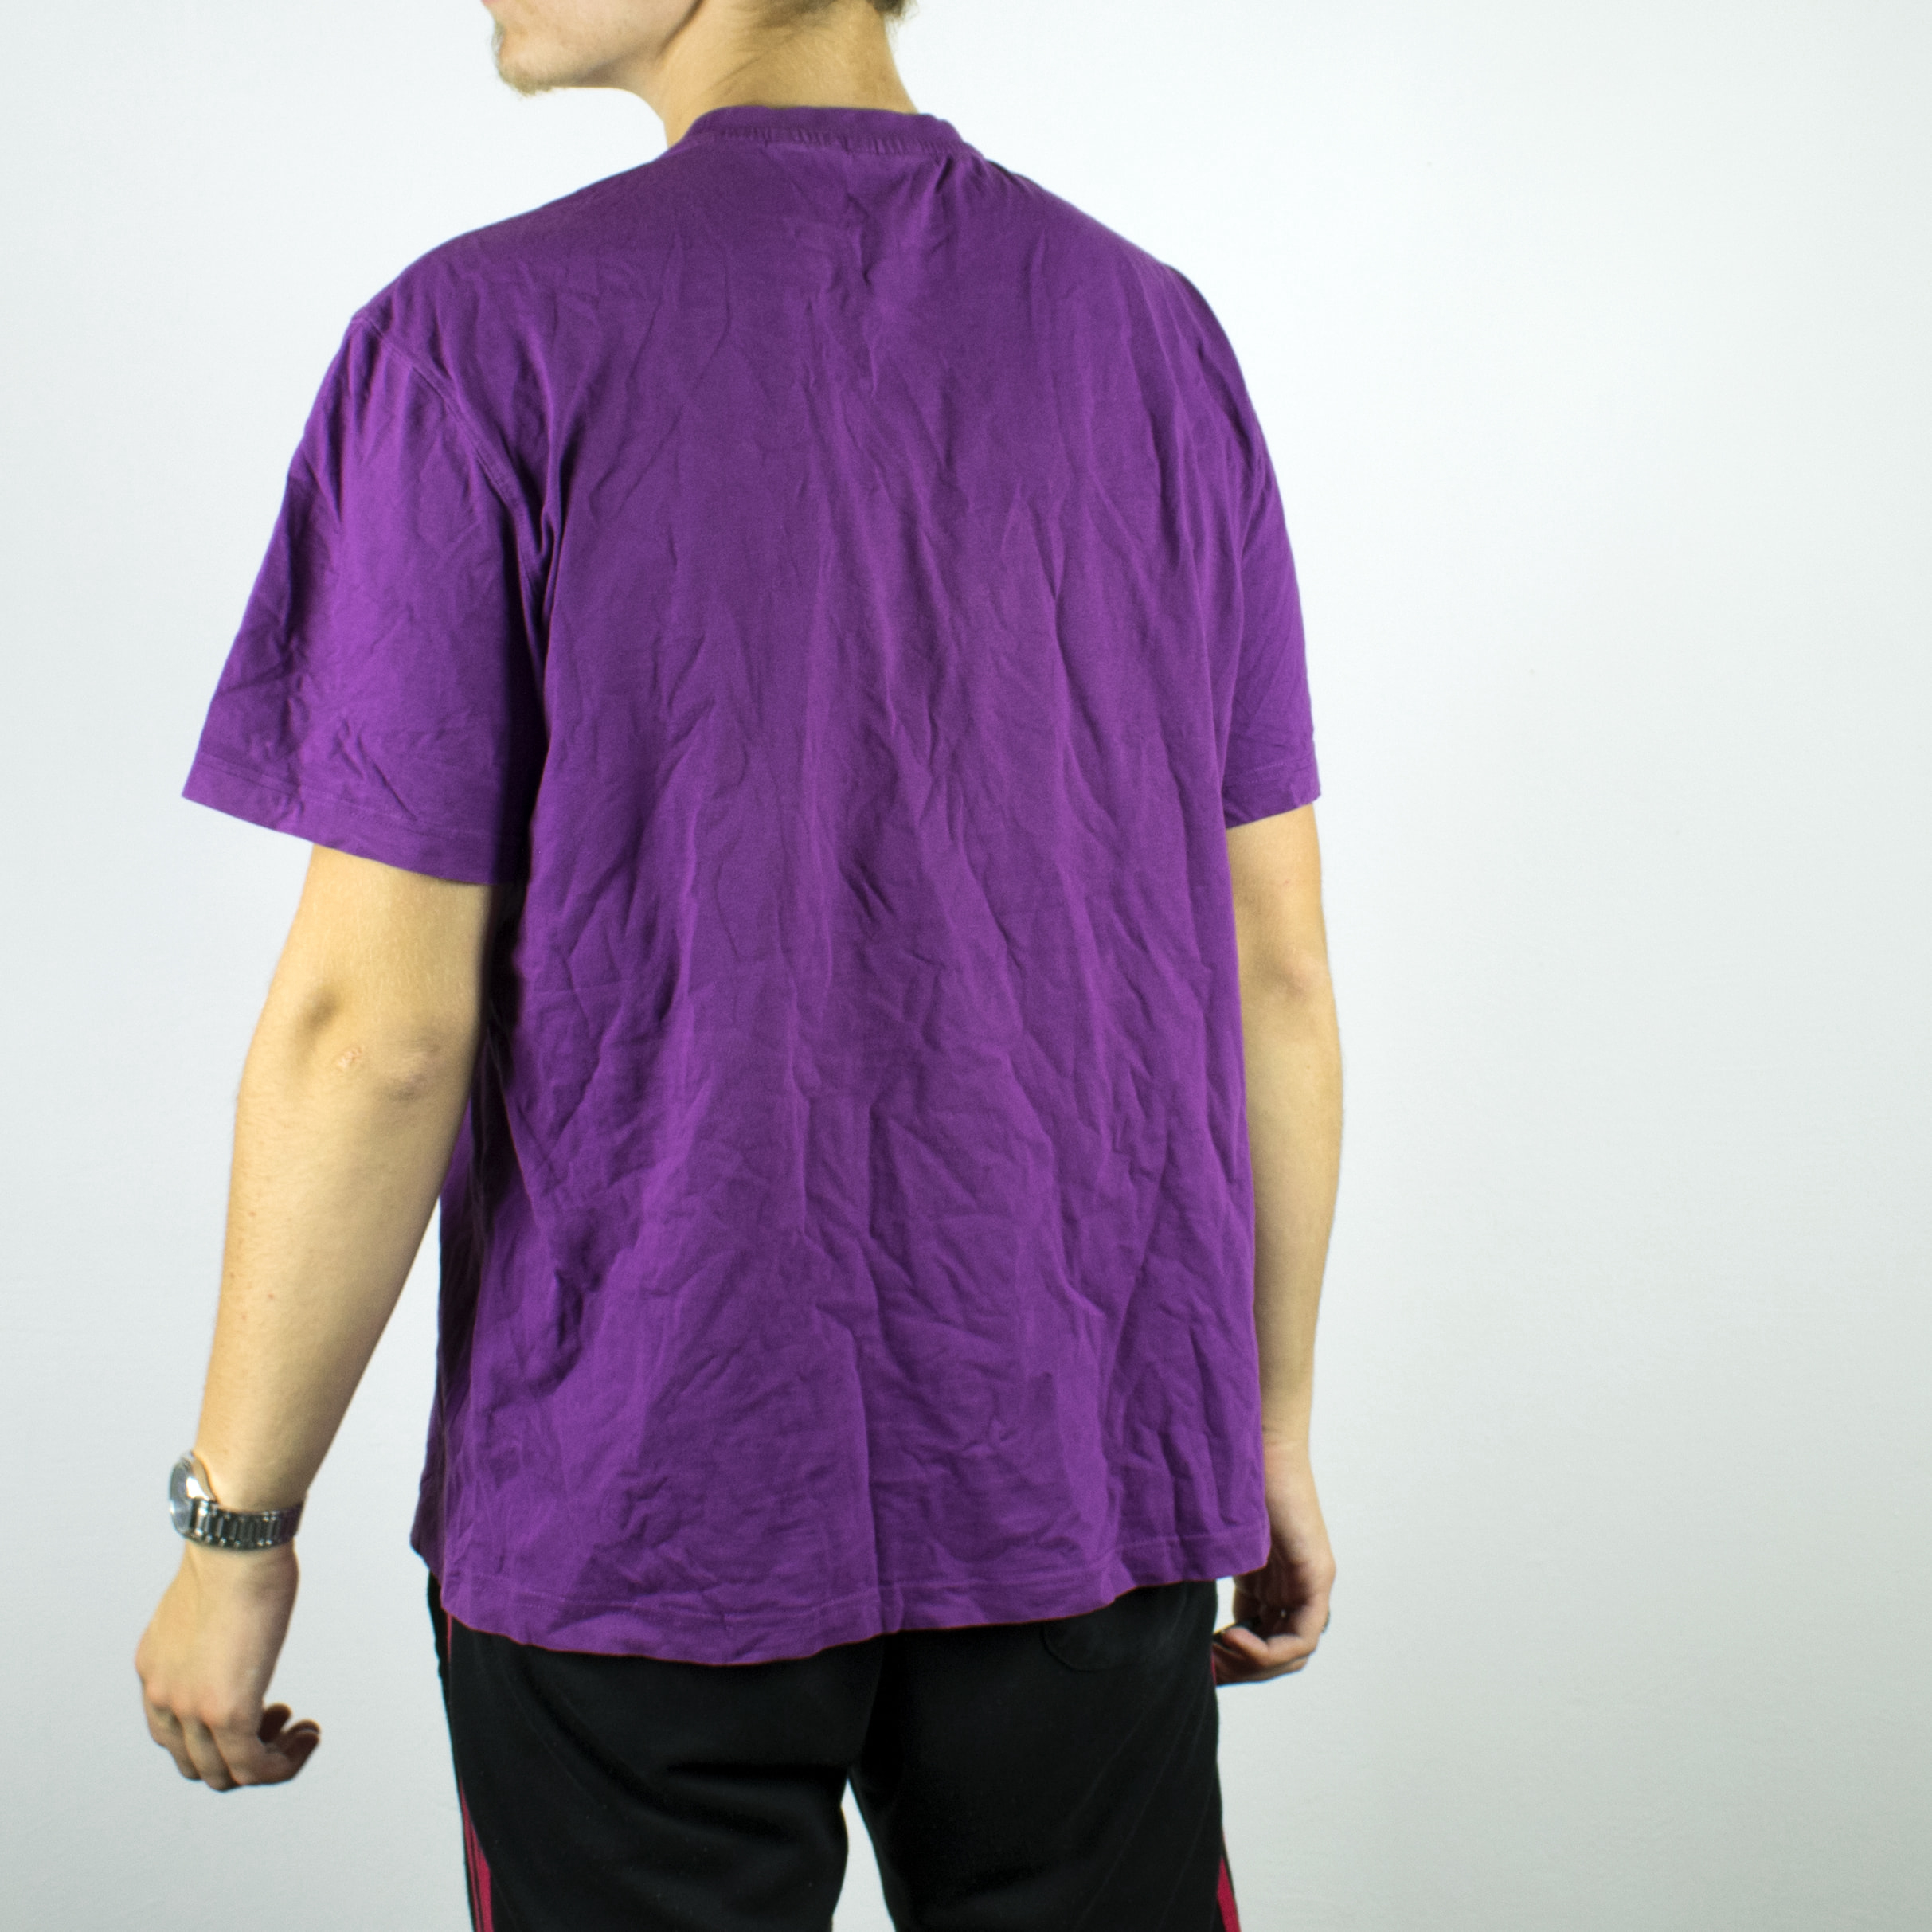 Unisex Vintage Fila t-shirt in purple has a design out of logos on the front size L